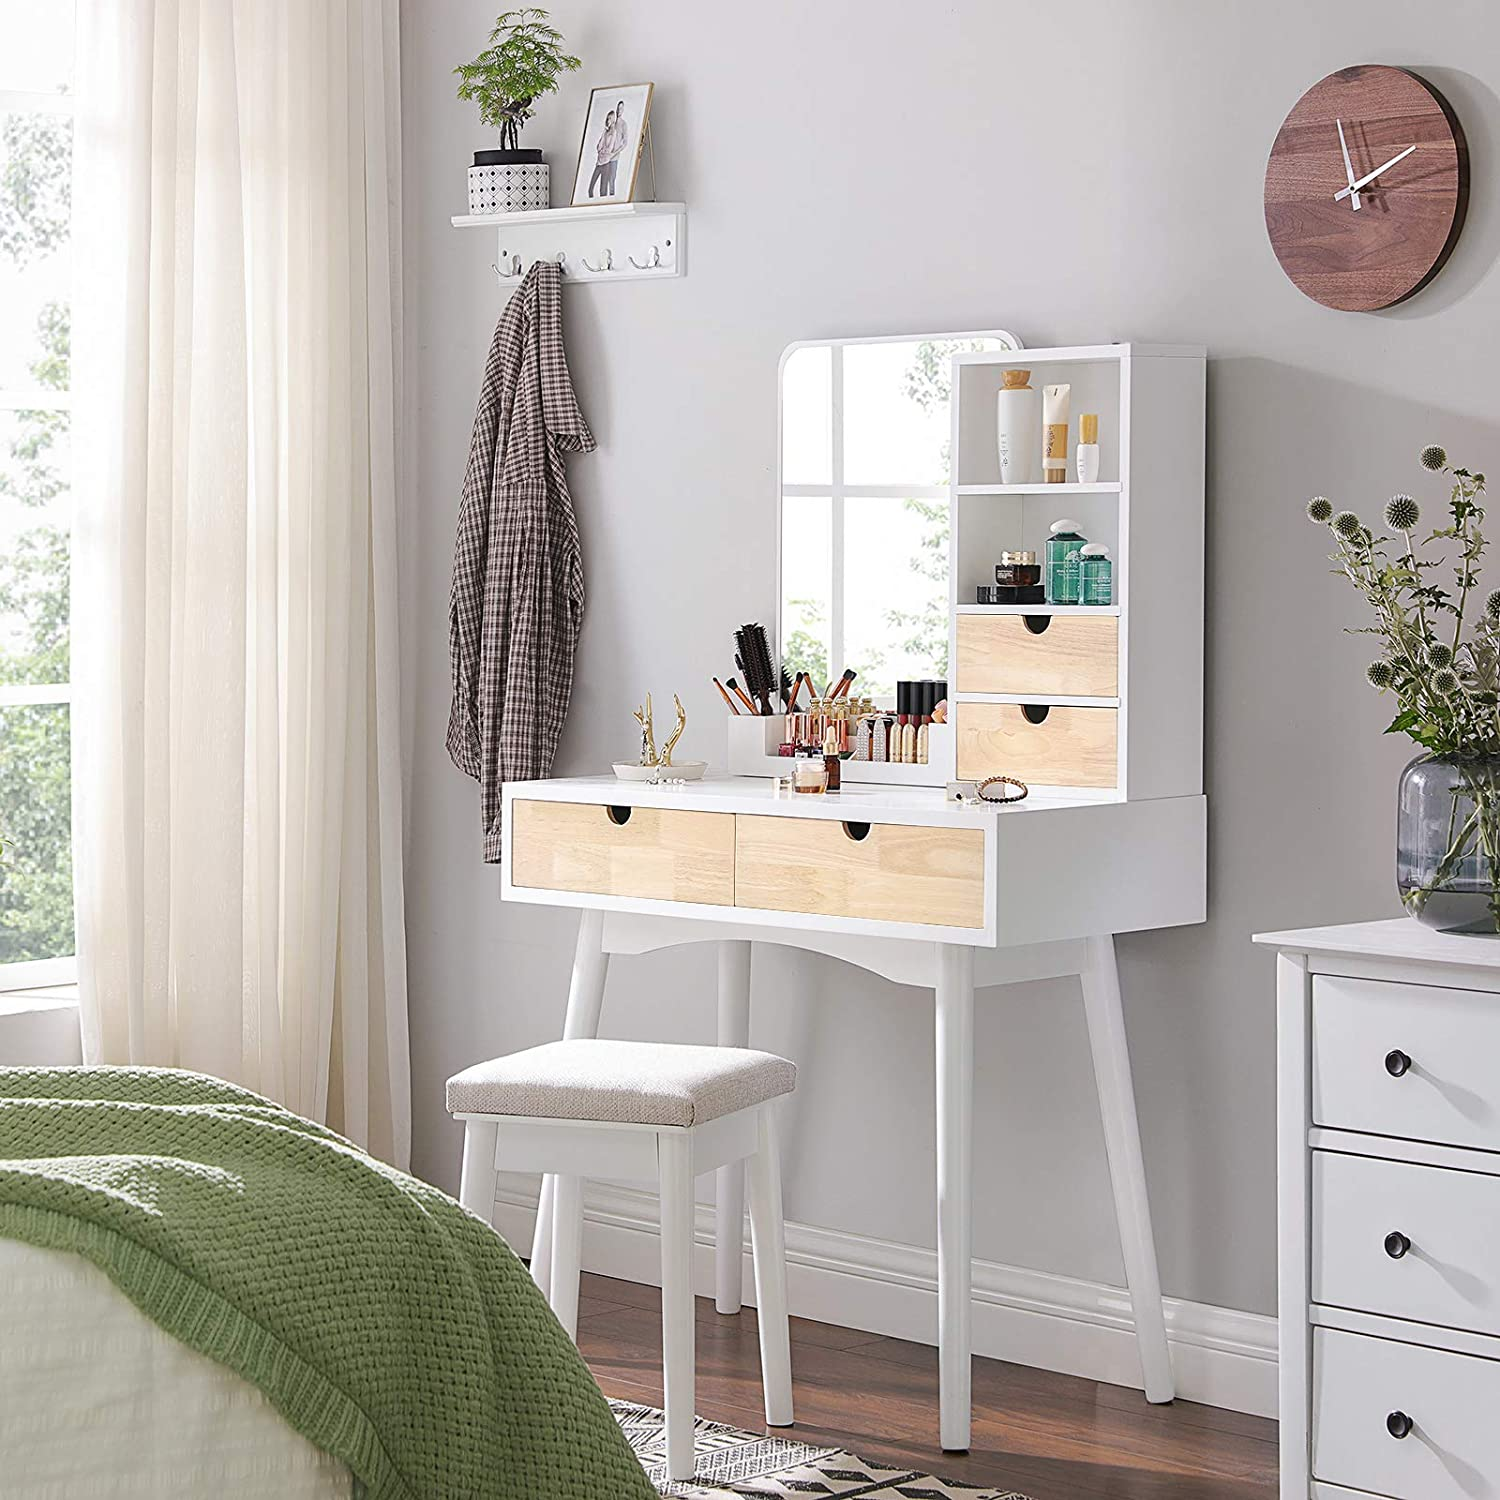 White and Natural Colour RDT32K 2 Open Compartments and Makeup Organiser Makeup Table Set with 4 Drawers Vanity Table with 1 Stool VASAGLE Bedroom Dressing Table with Mirror